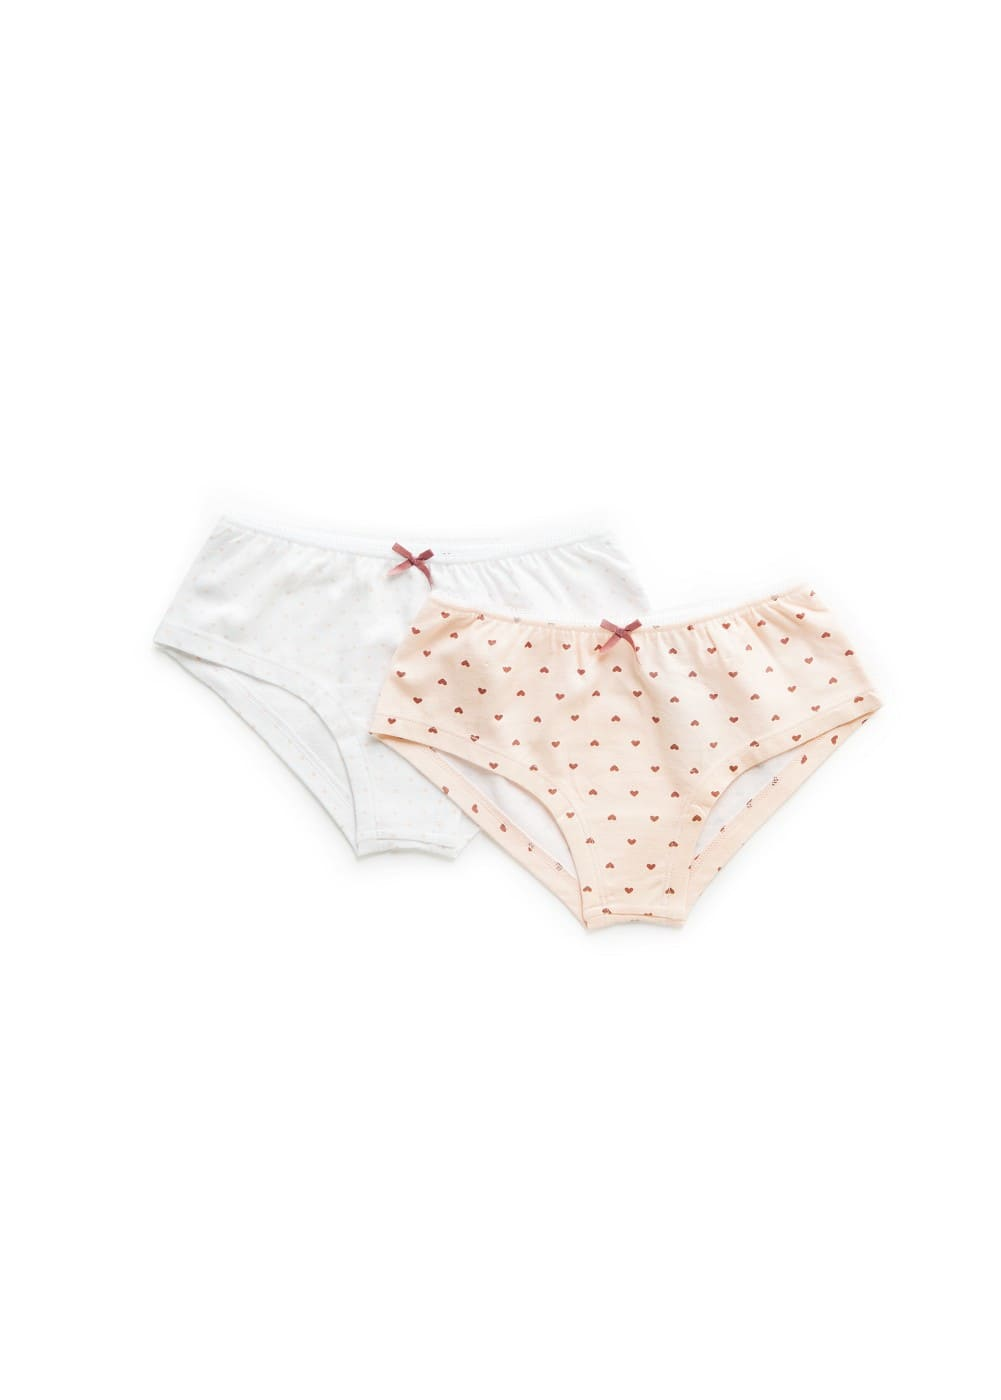 2 pack cotton panties